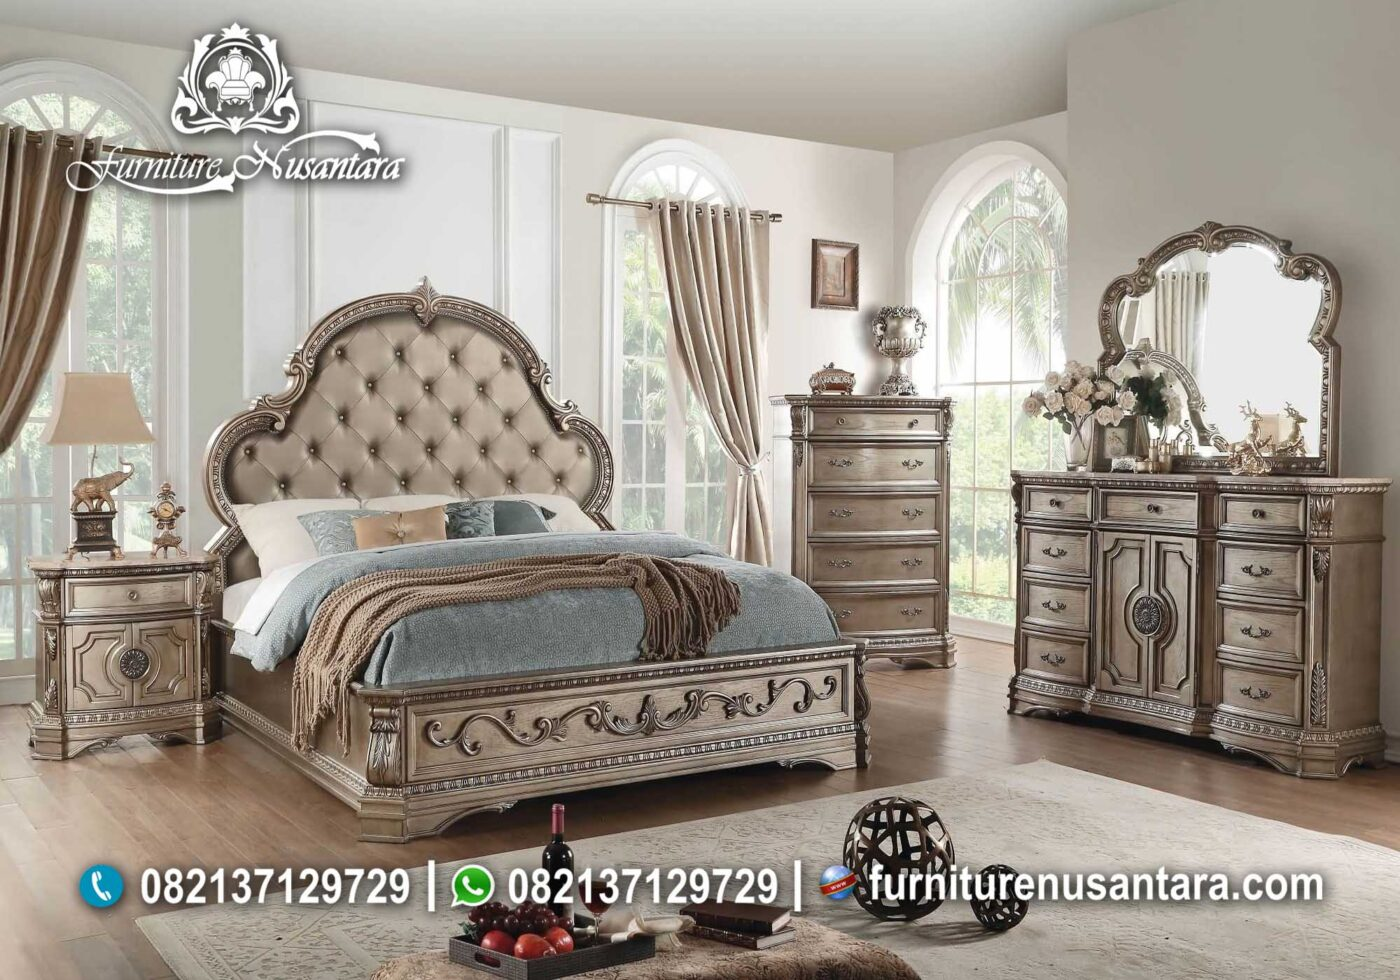 Jual Kamat Set Custom KS-27, Furniture Nusantara